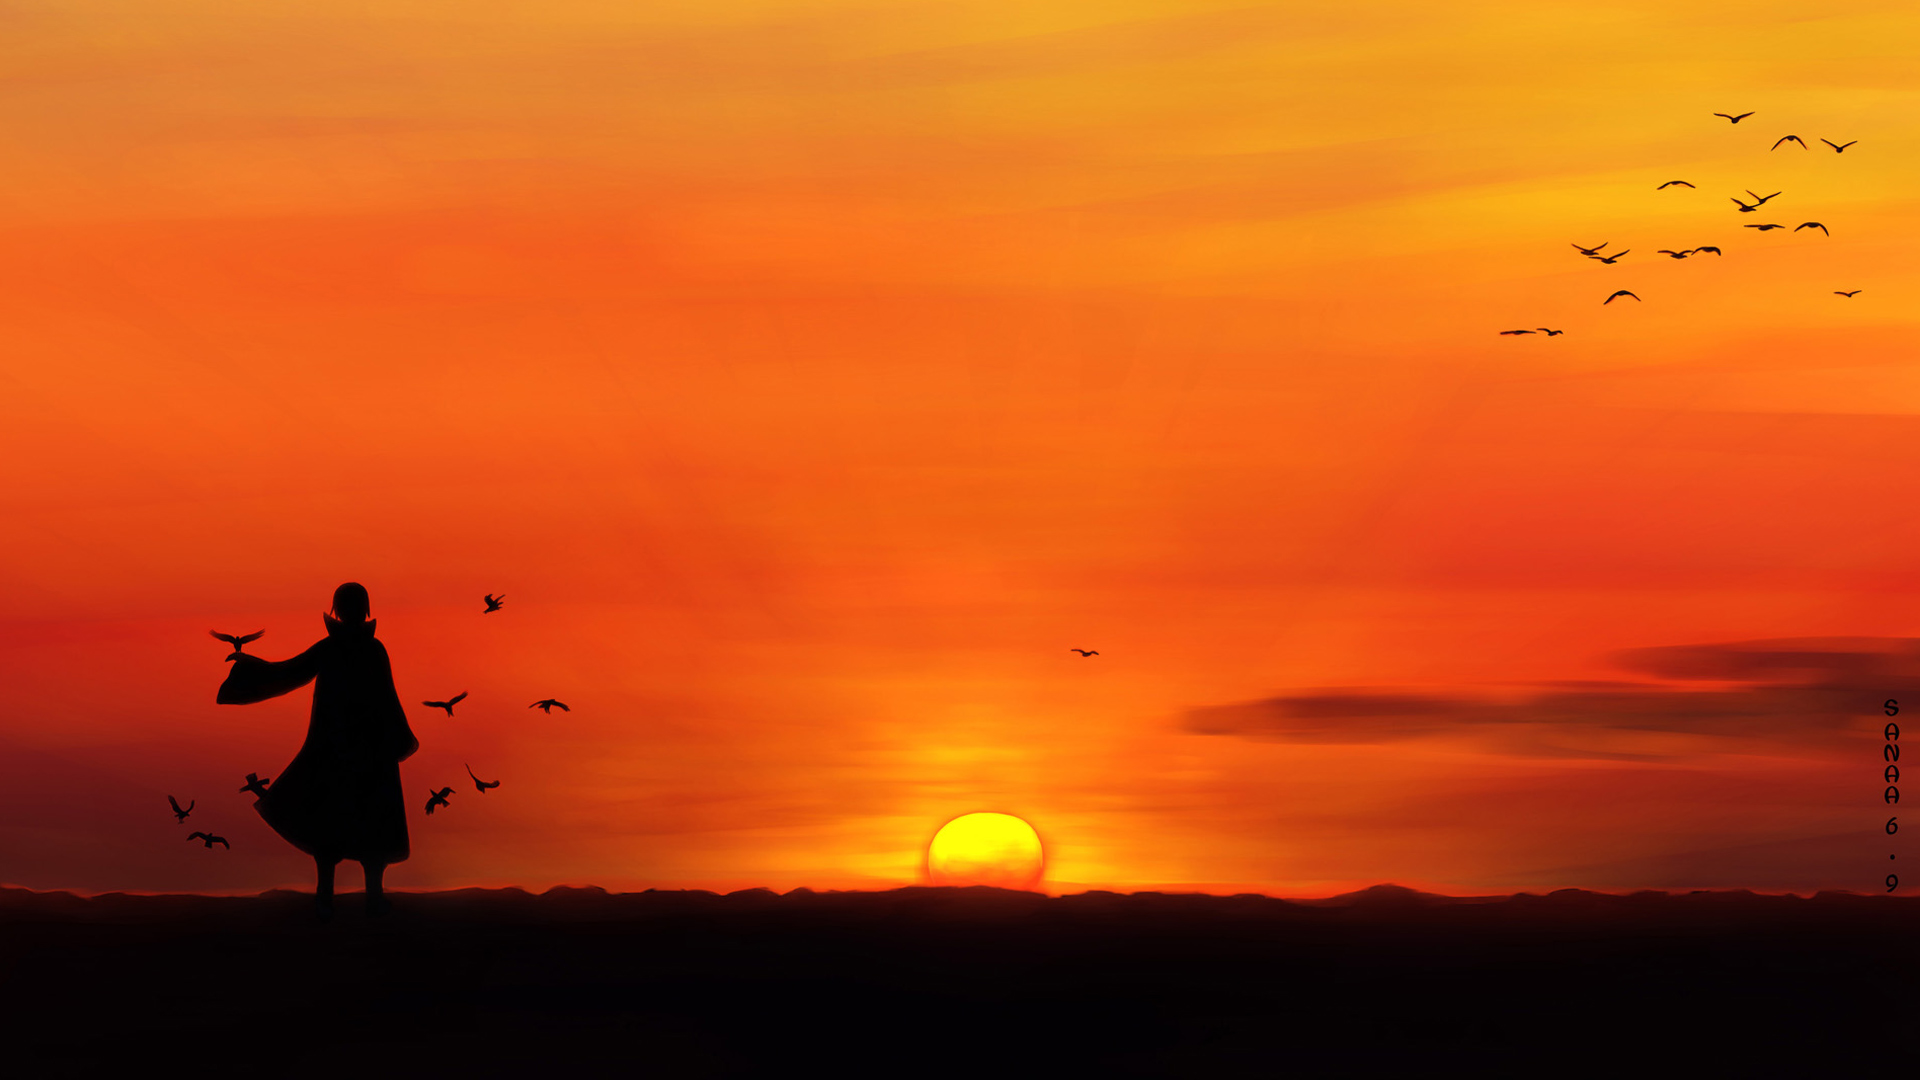 Itachi Uchiha Sunset 8i Wallpaper HD 1920x1080